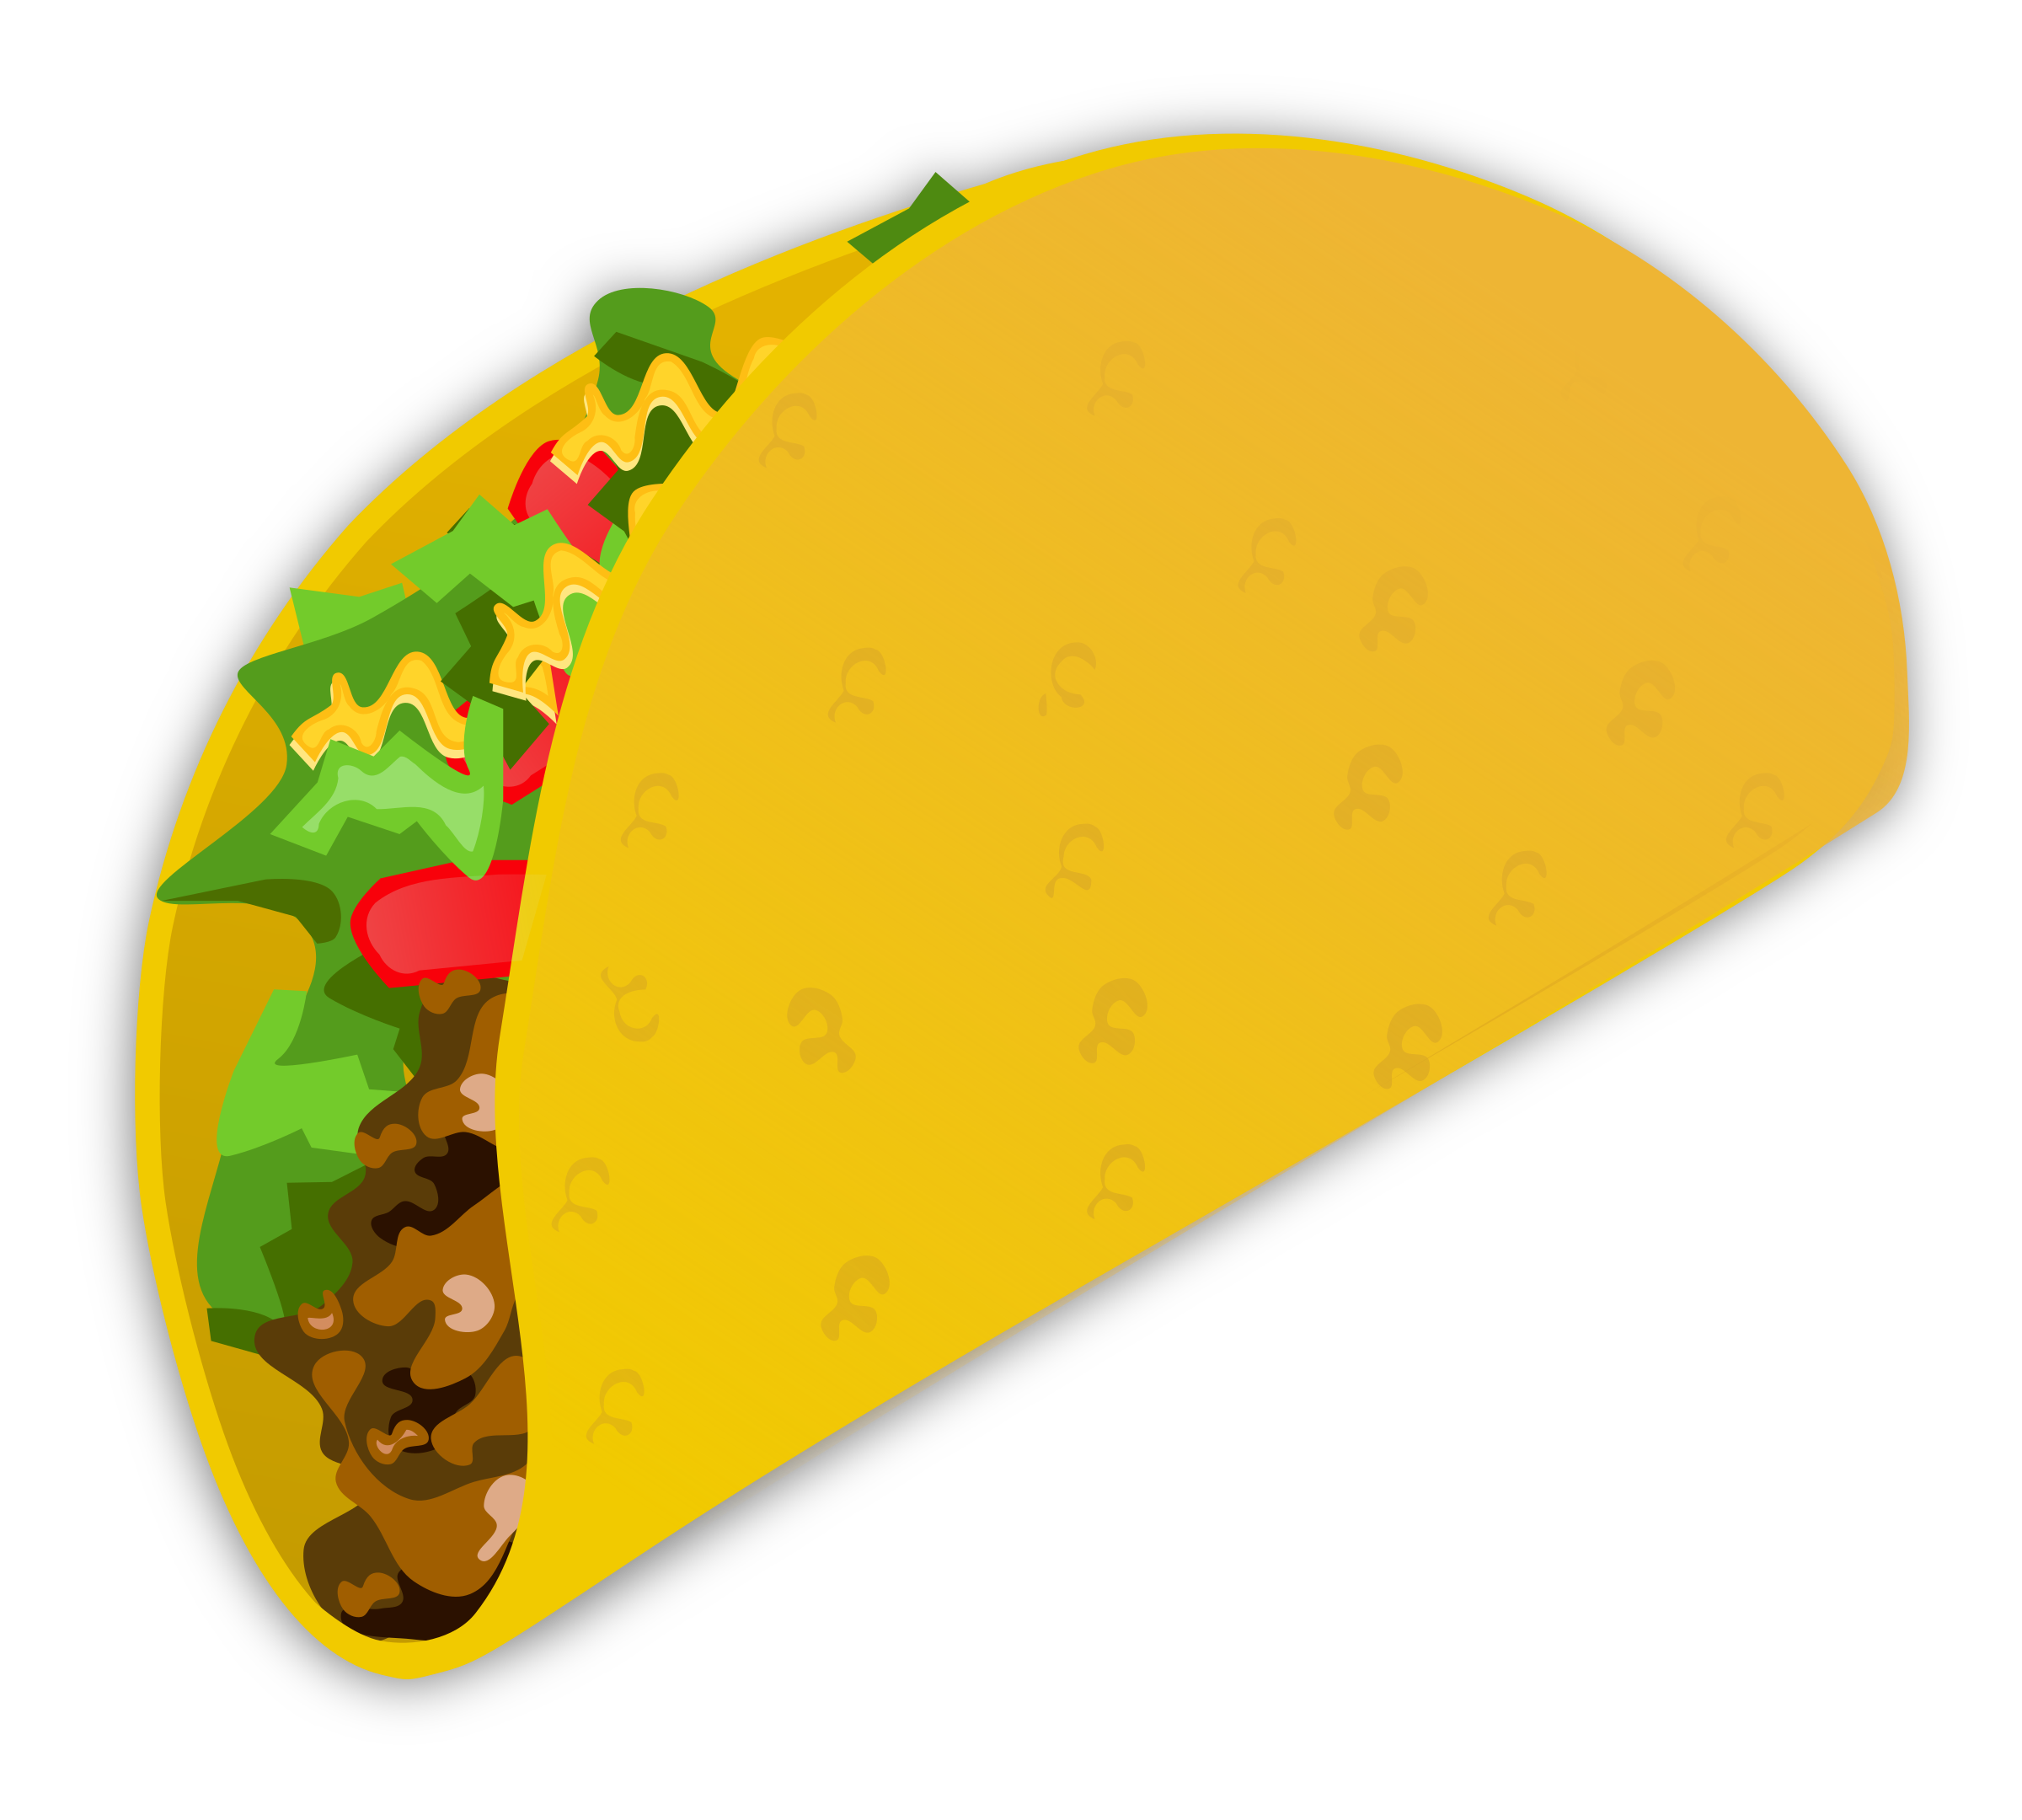 freeuse stock Big image png. Taco clipart